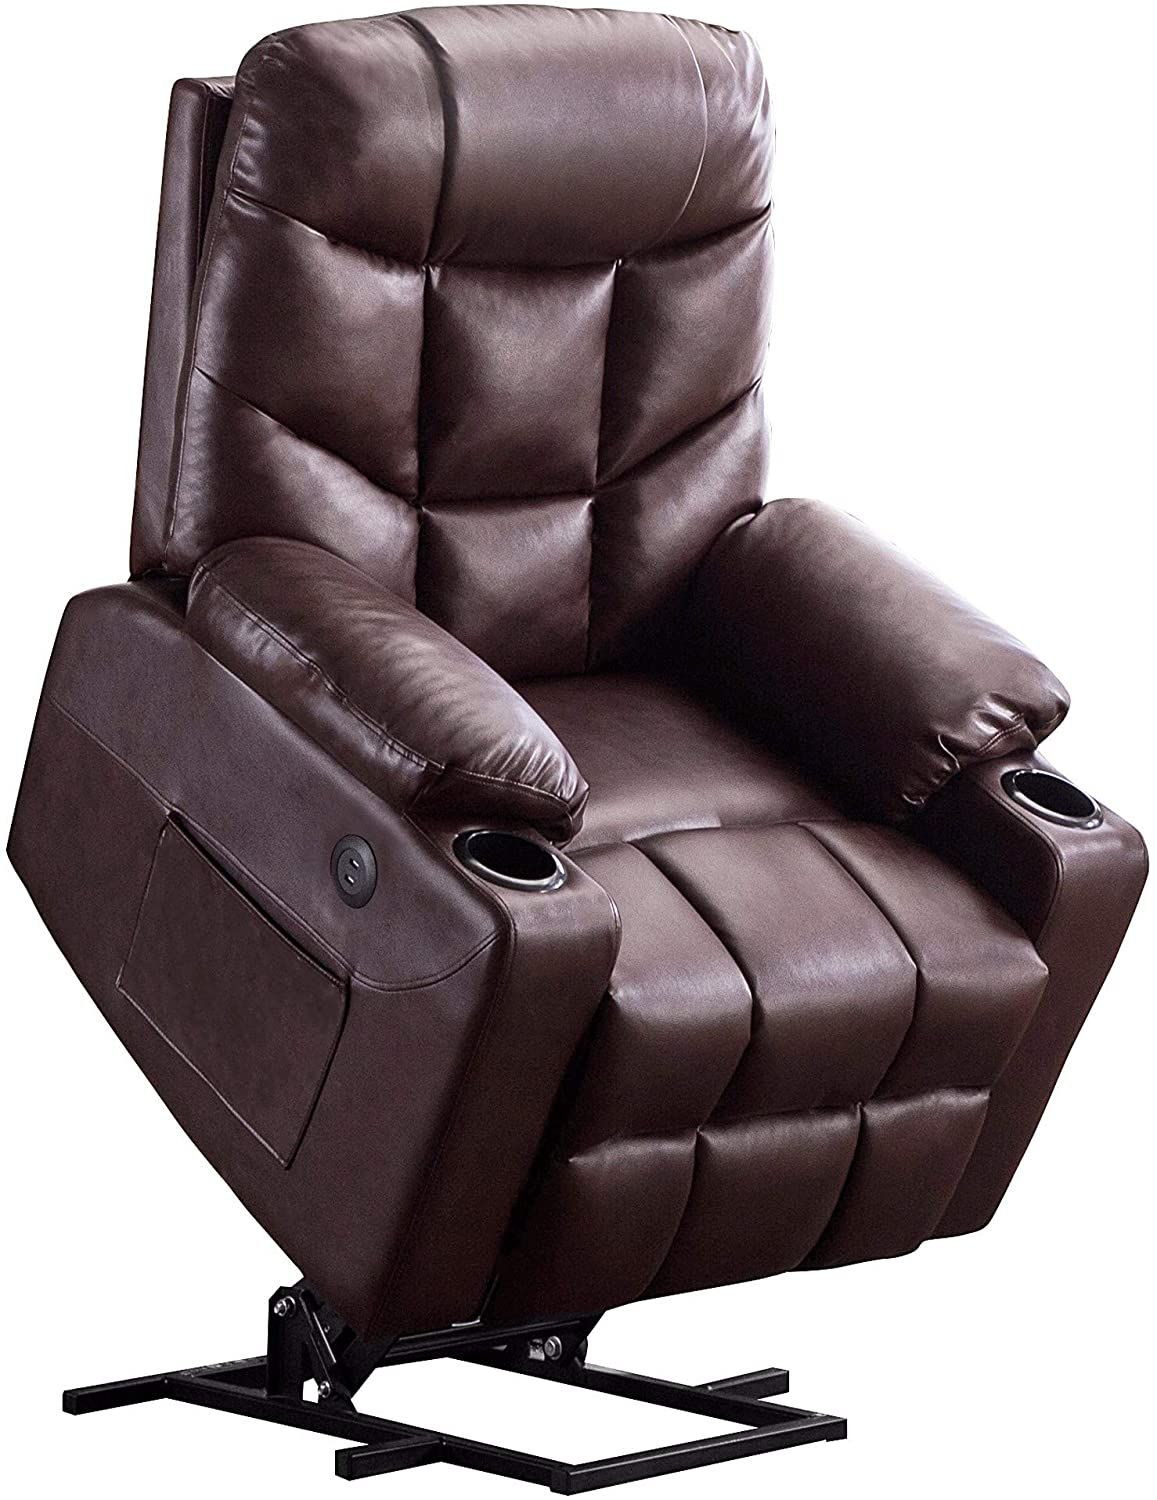 Mcombo Electric Power Lift Recliner Chair Sofa For Elderly 3 Positions 2 Side Pockets And Cup Holders Usb In 2020 Recliner Chair Couch With Chaise Lift Recliners